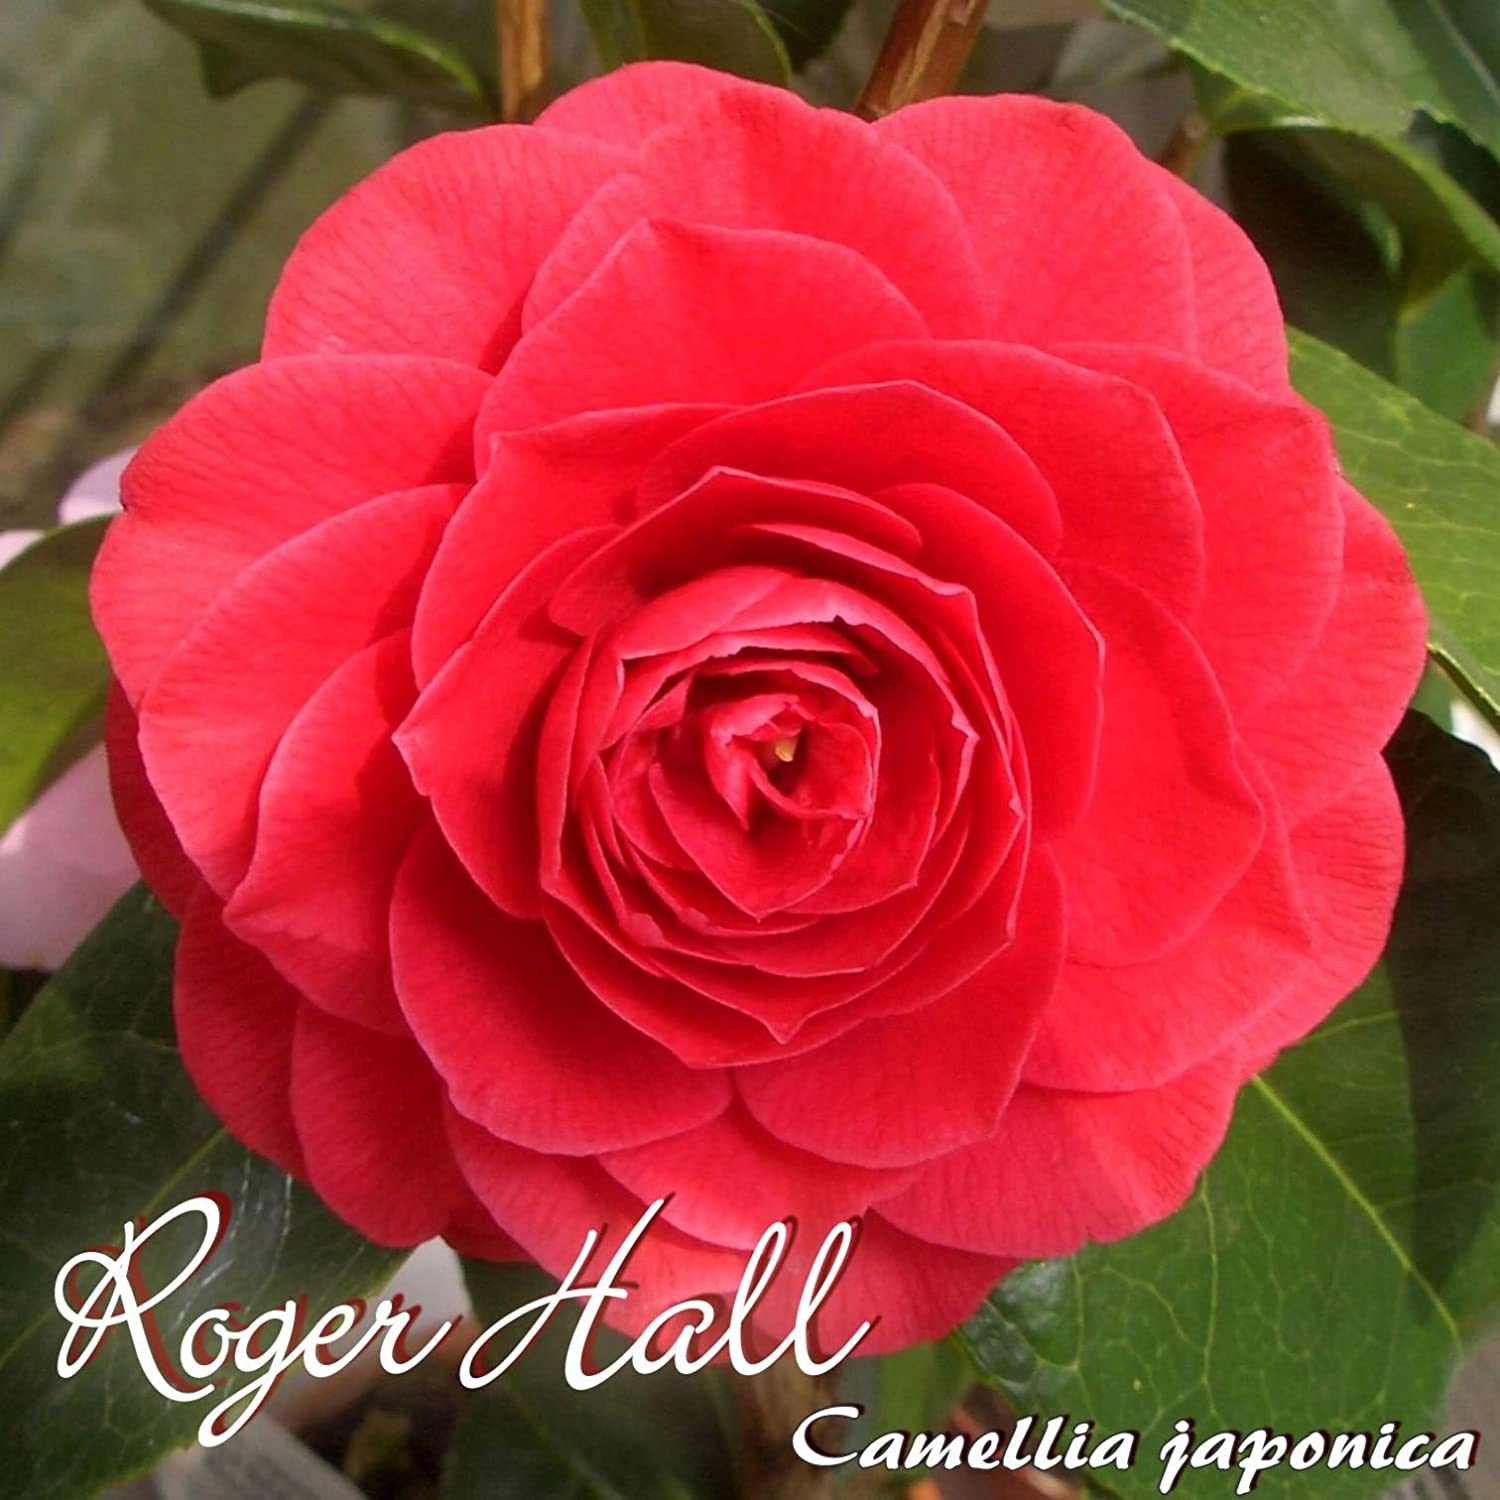 Kamelie Roger Hall Camellia Japonica 4 To 5 Years Old Plant